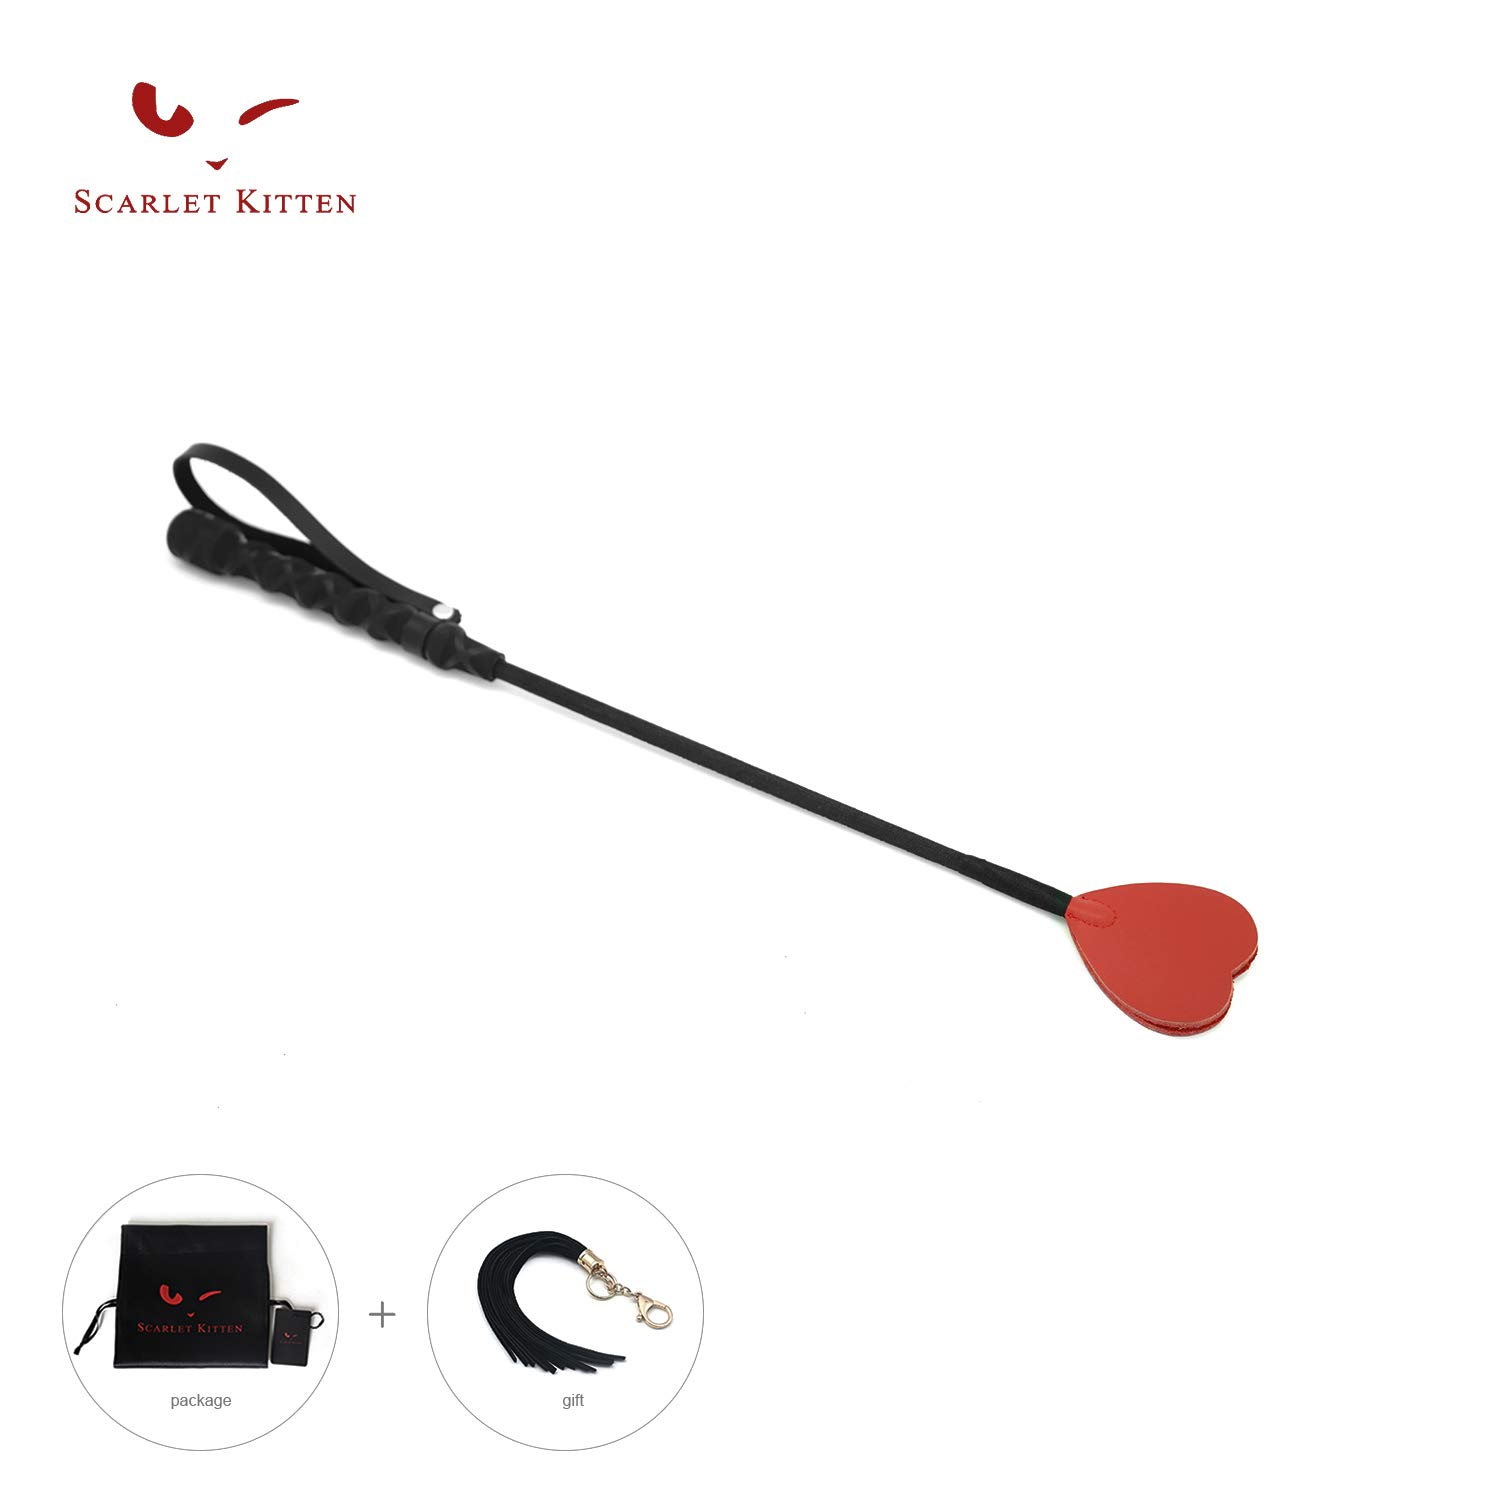 SCARLET KITTEN Riding Crop Horse Whip Spanking with Leather Slapper Heart Shape Jump Bat (Red) by SCARLET KITTEN